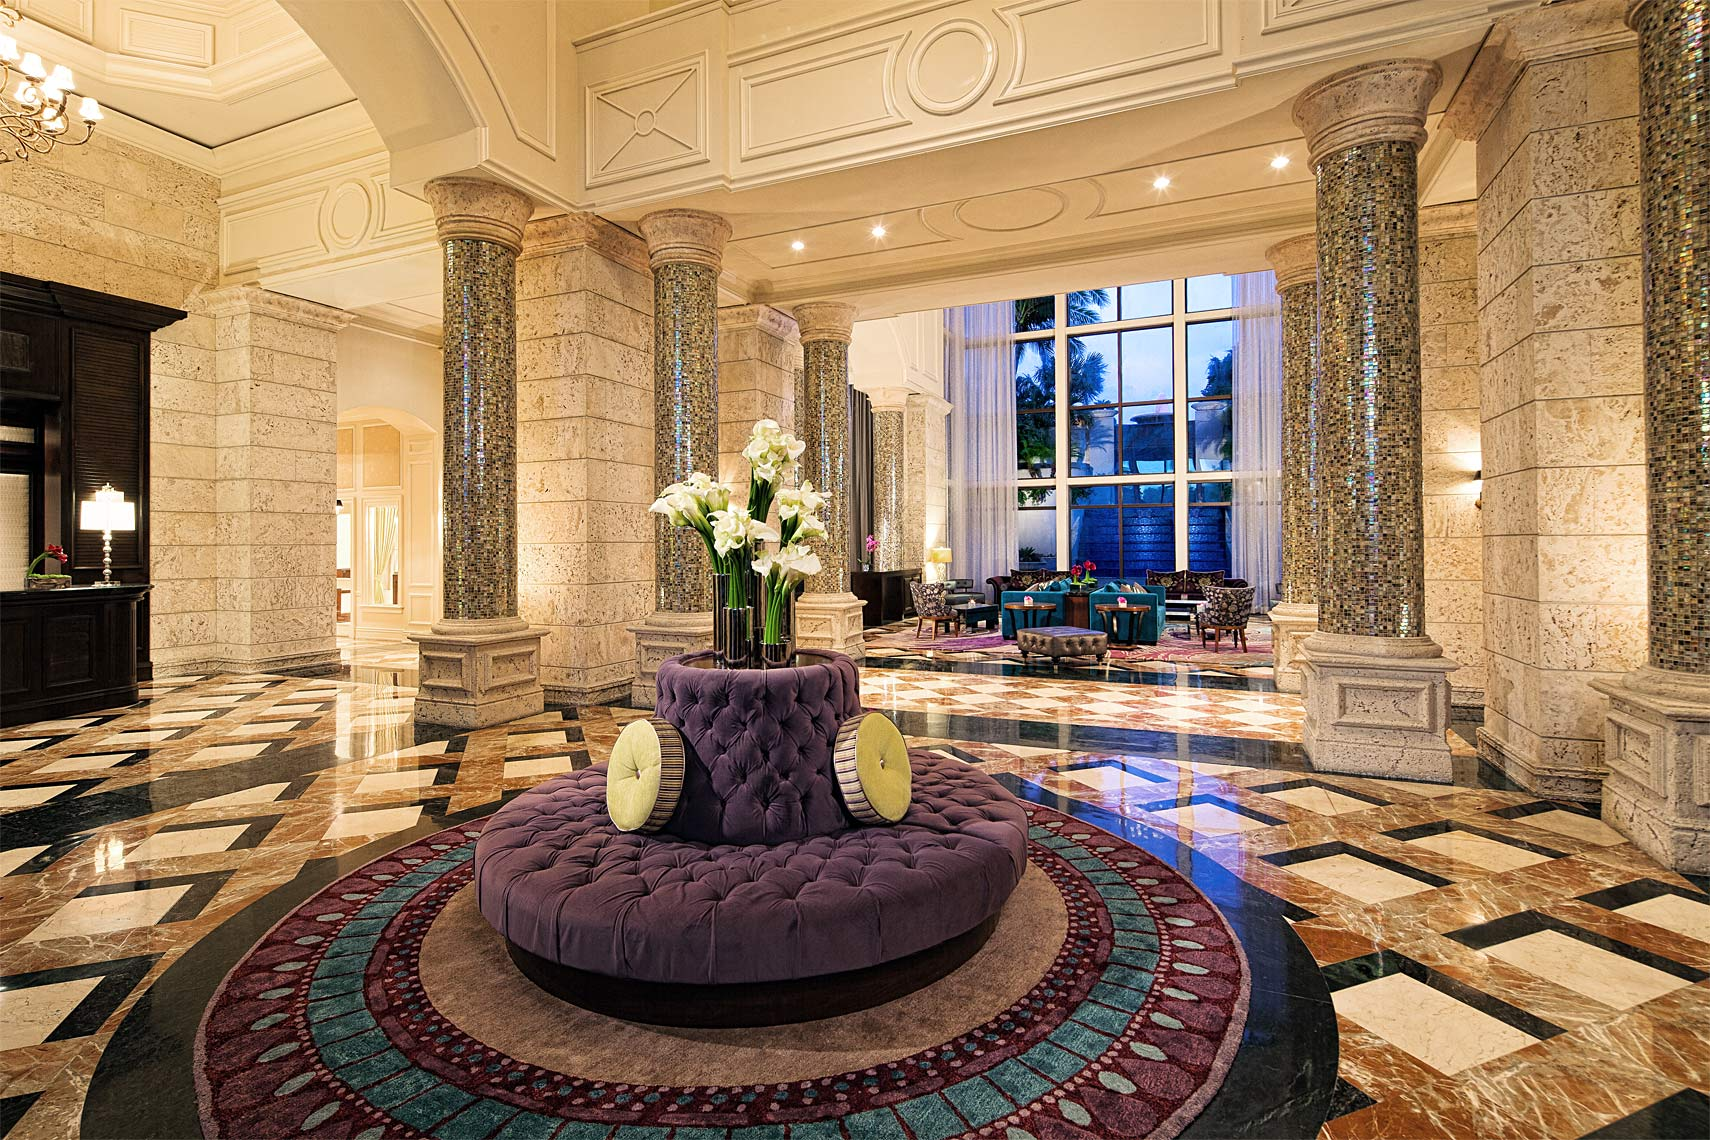 Ritz Carlton Coconut Grove Miami - Lobby 1